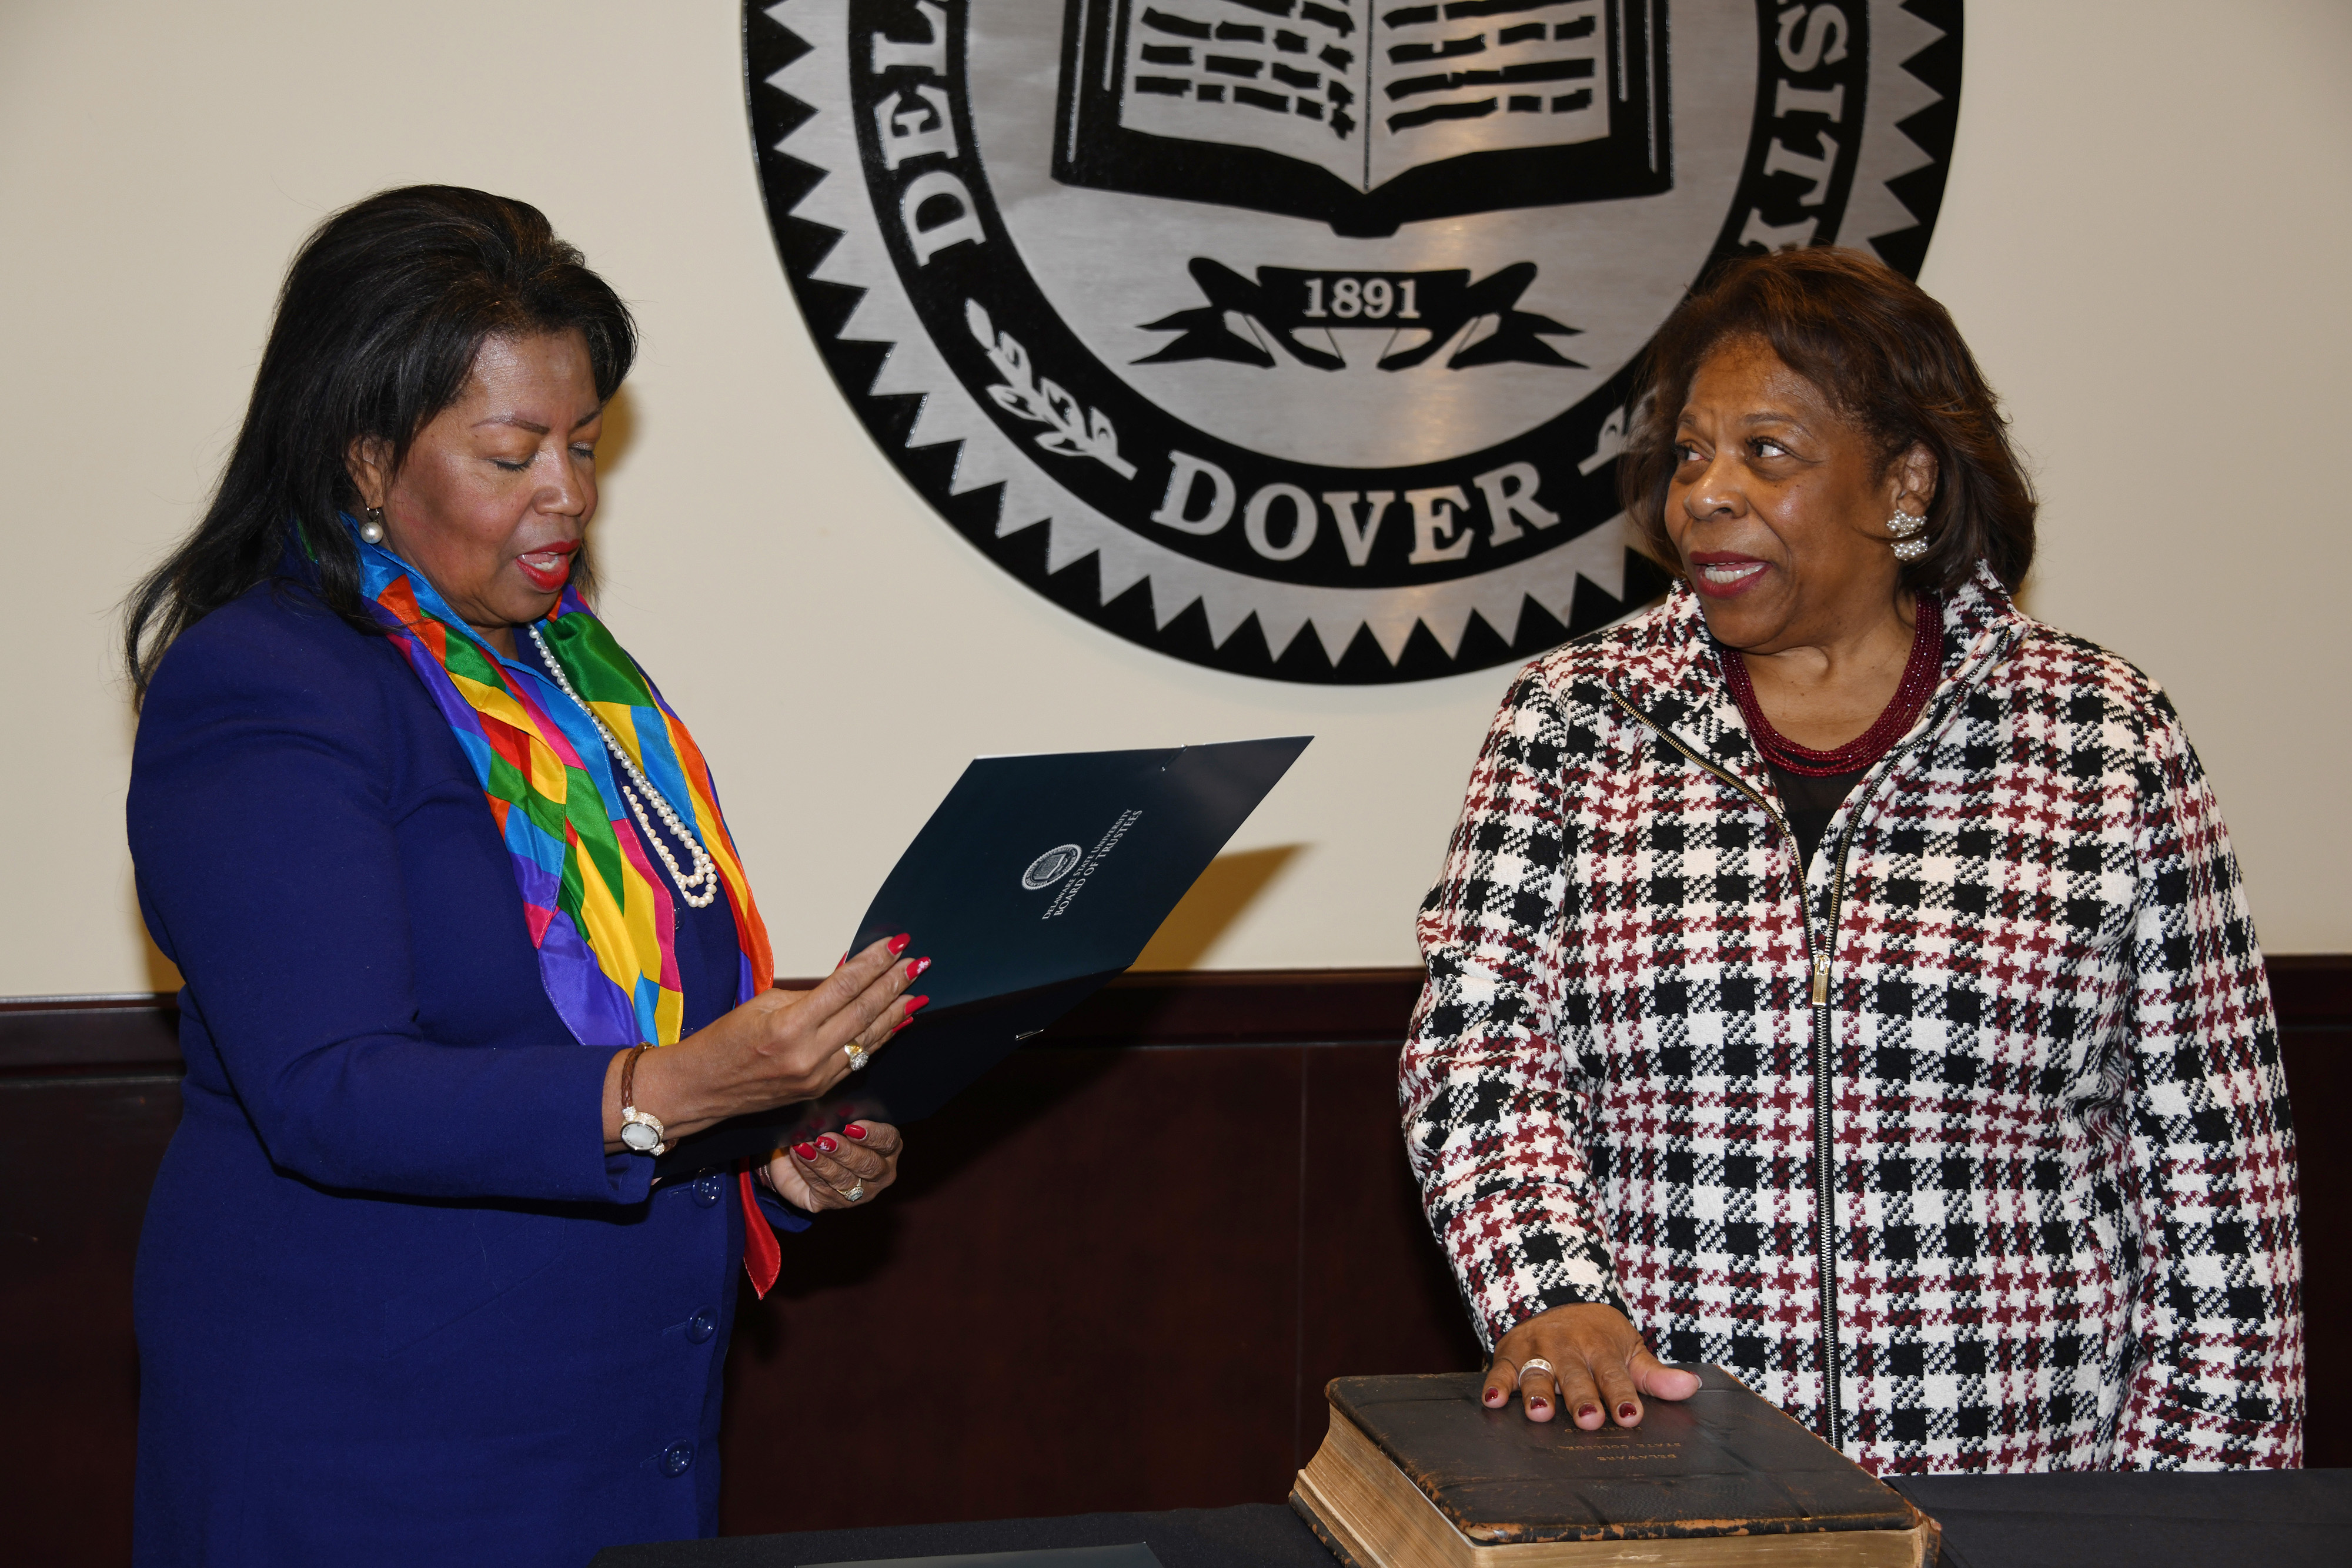 Dr. Mishoe returns to University Board